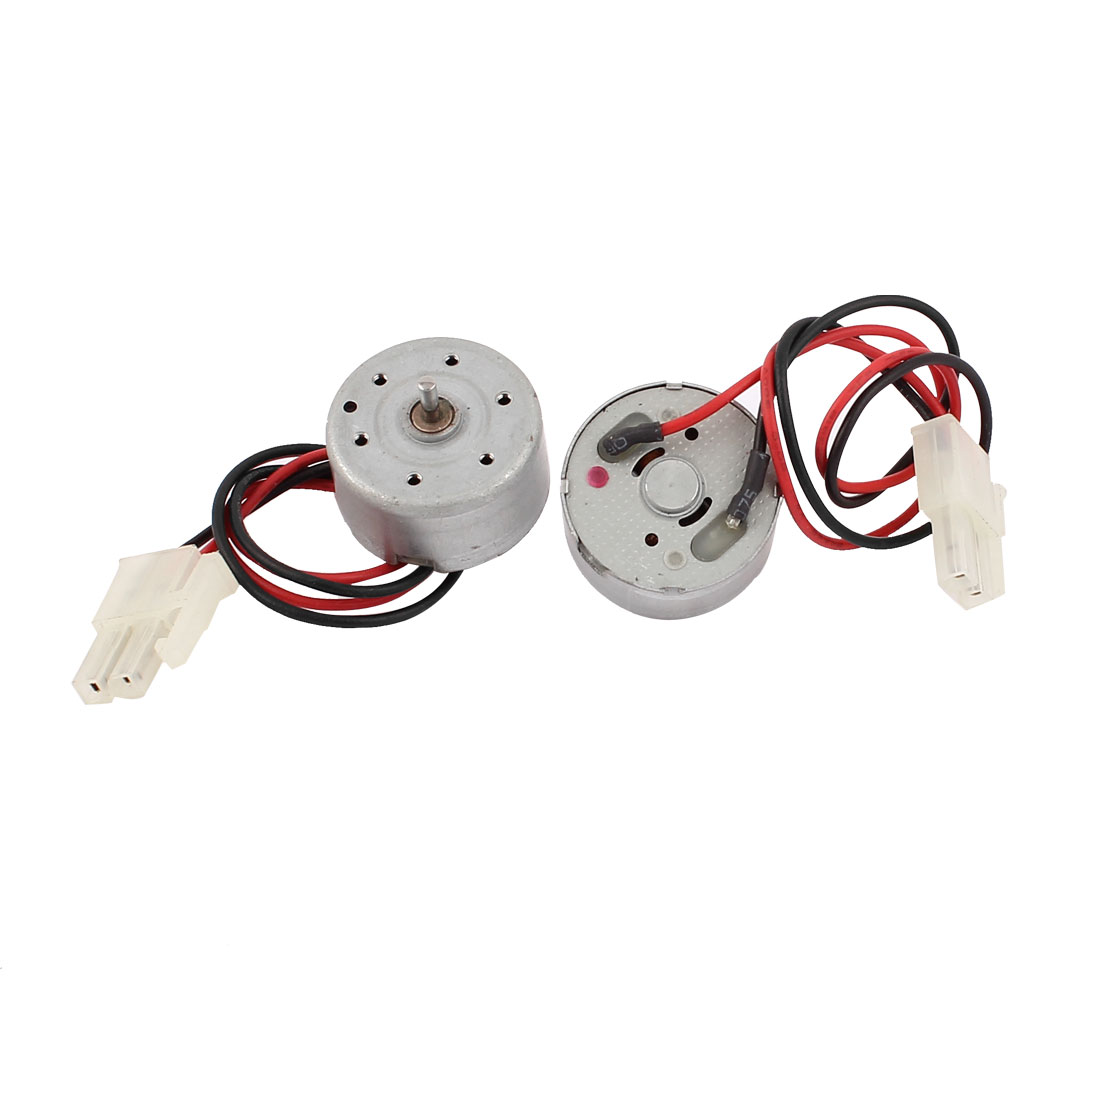 2 Pcs DC 2.4V 5100RPM Wire Lead Micro Mini Motor Repair Part for VCD DVD Player